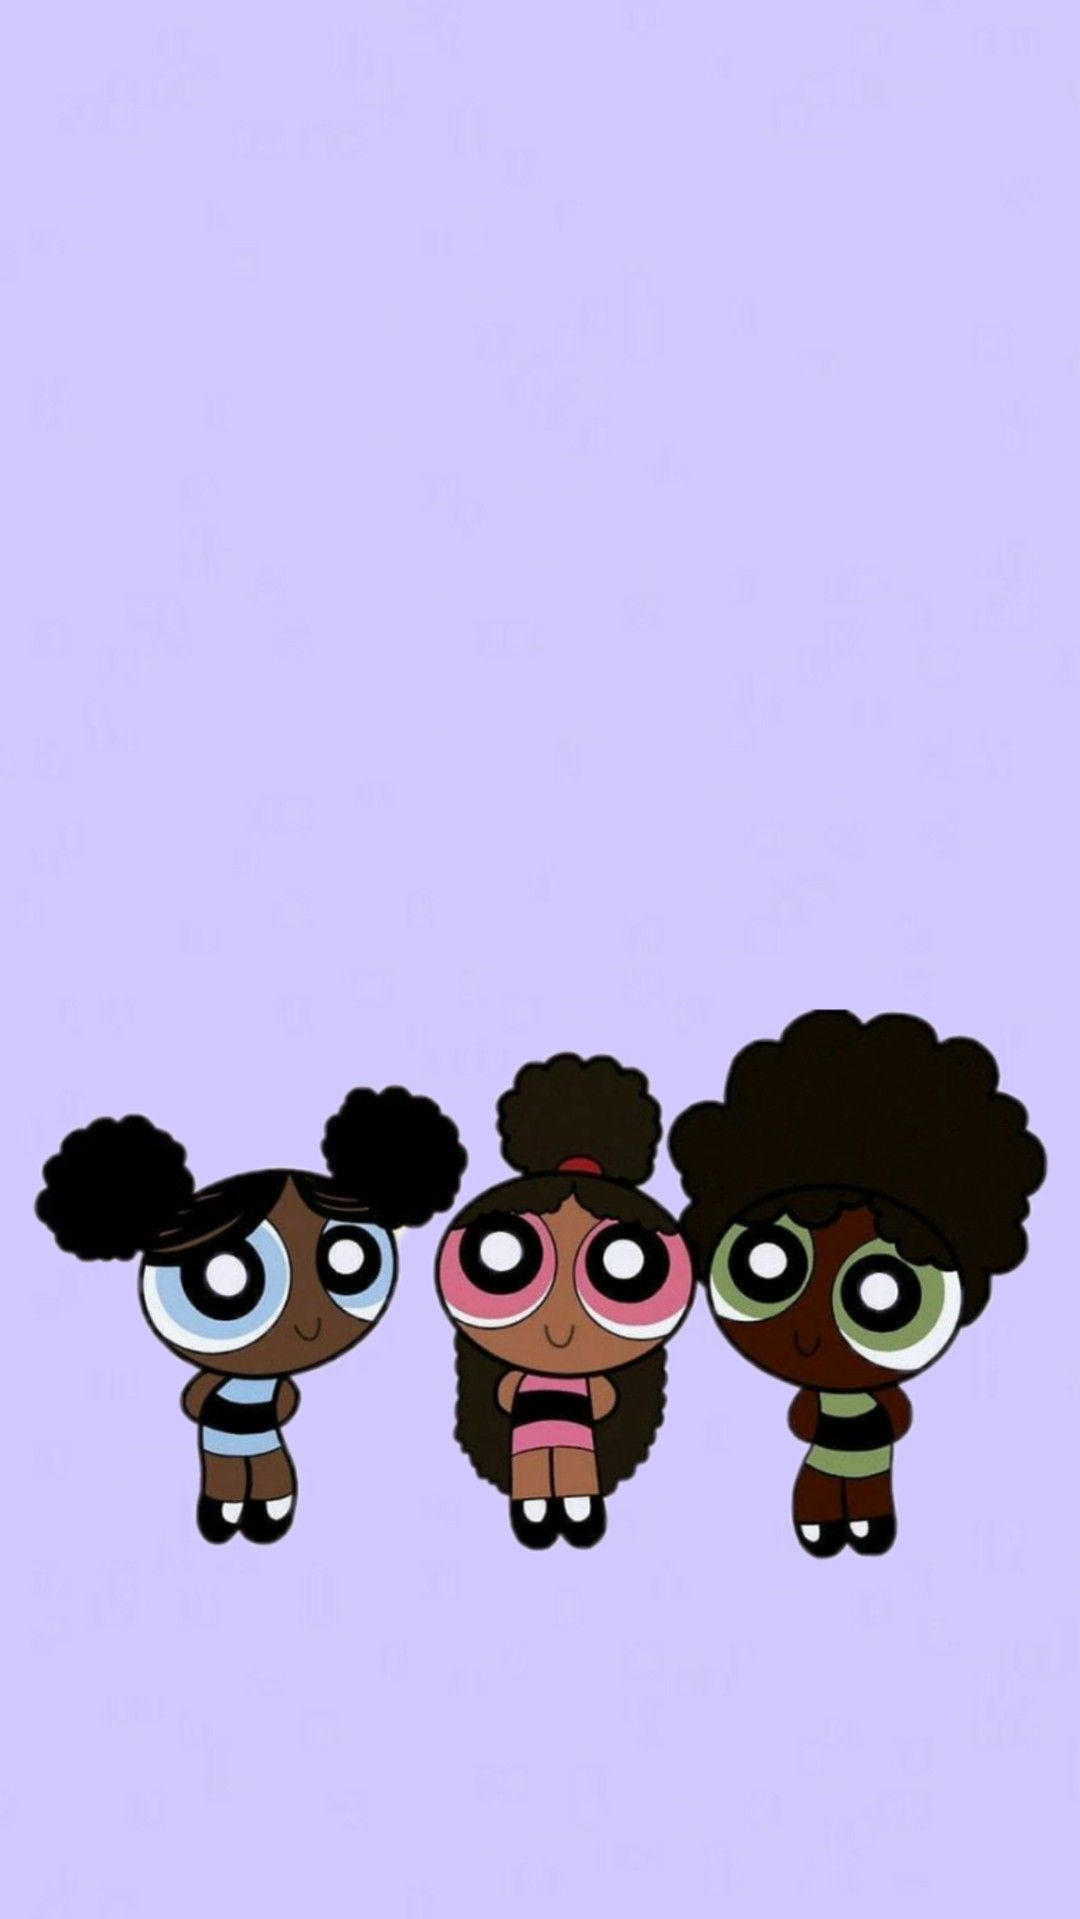 Black Powerpuffgirls Wallpaper Lavender Background In 2020 Powerpuff Girls Wallpaper Cartoon Wallpaper Iphone Cartoon Wallpaper